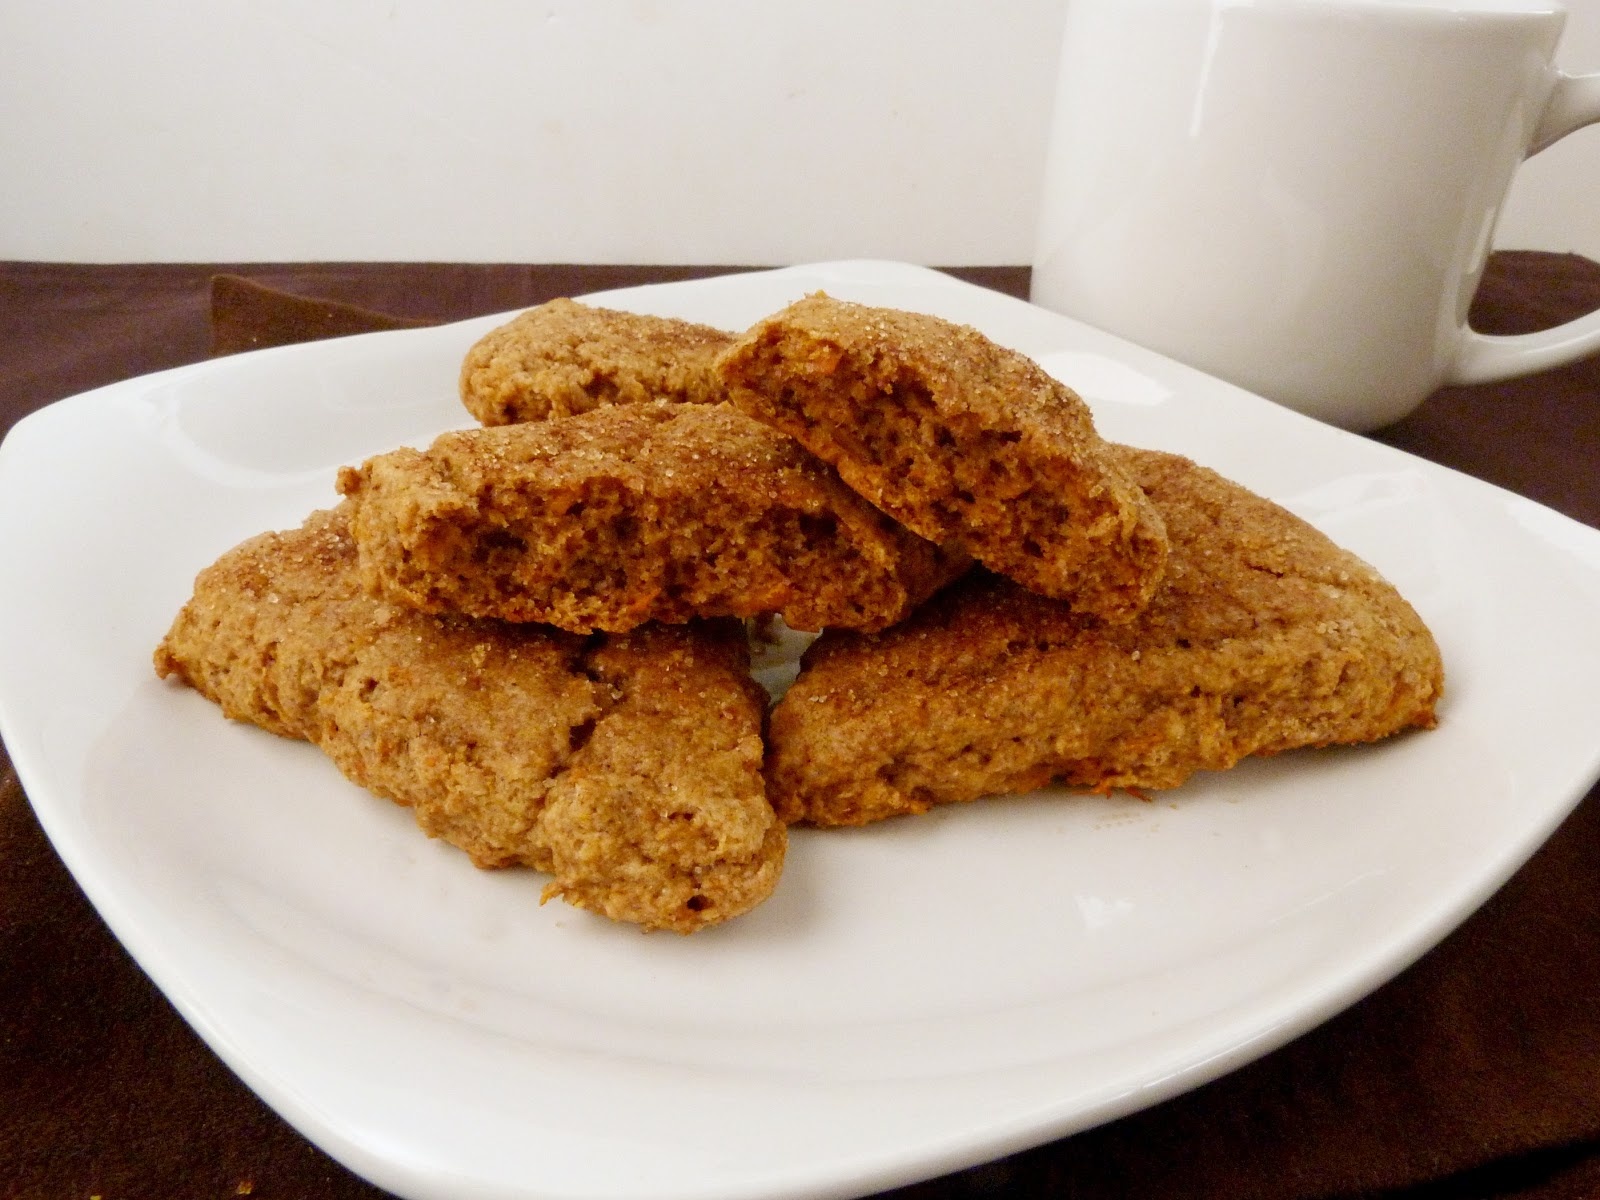 changes to turn them into spiced sweet potato scones instead